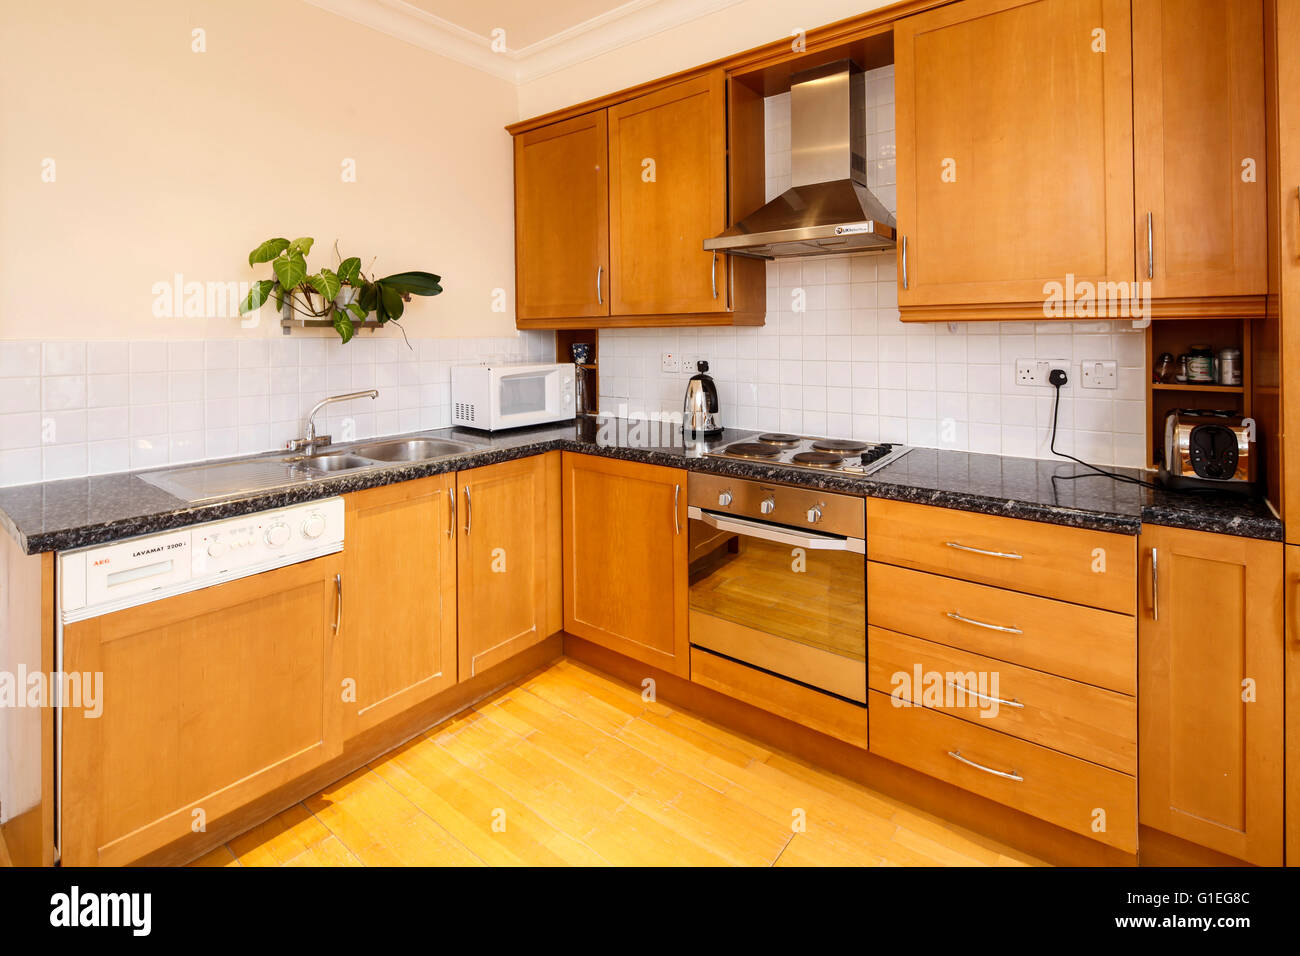 Belsize Lane, Hampstead. Kitchen with wood cabinets and floors. Stock Photo